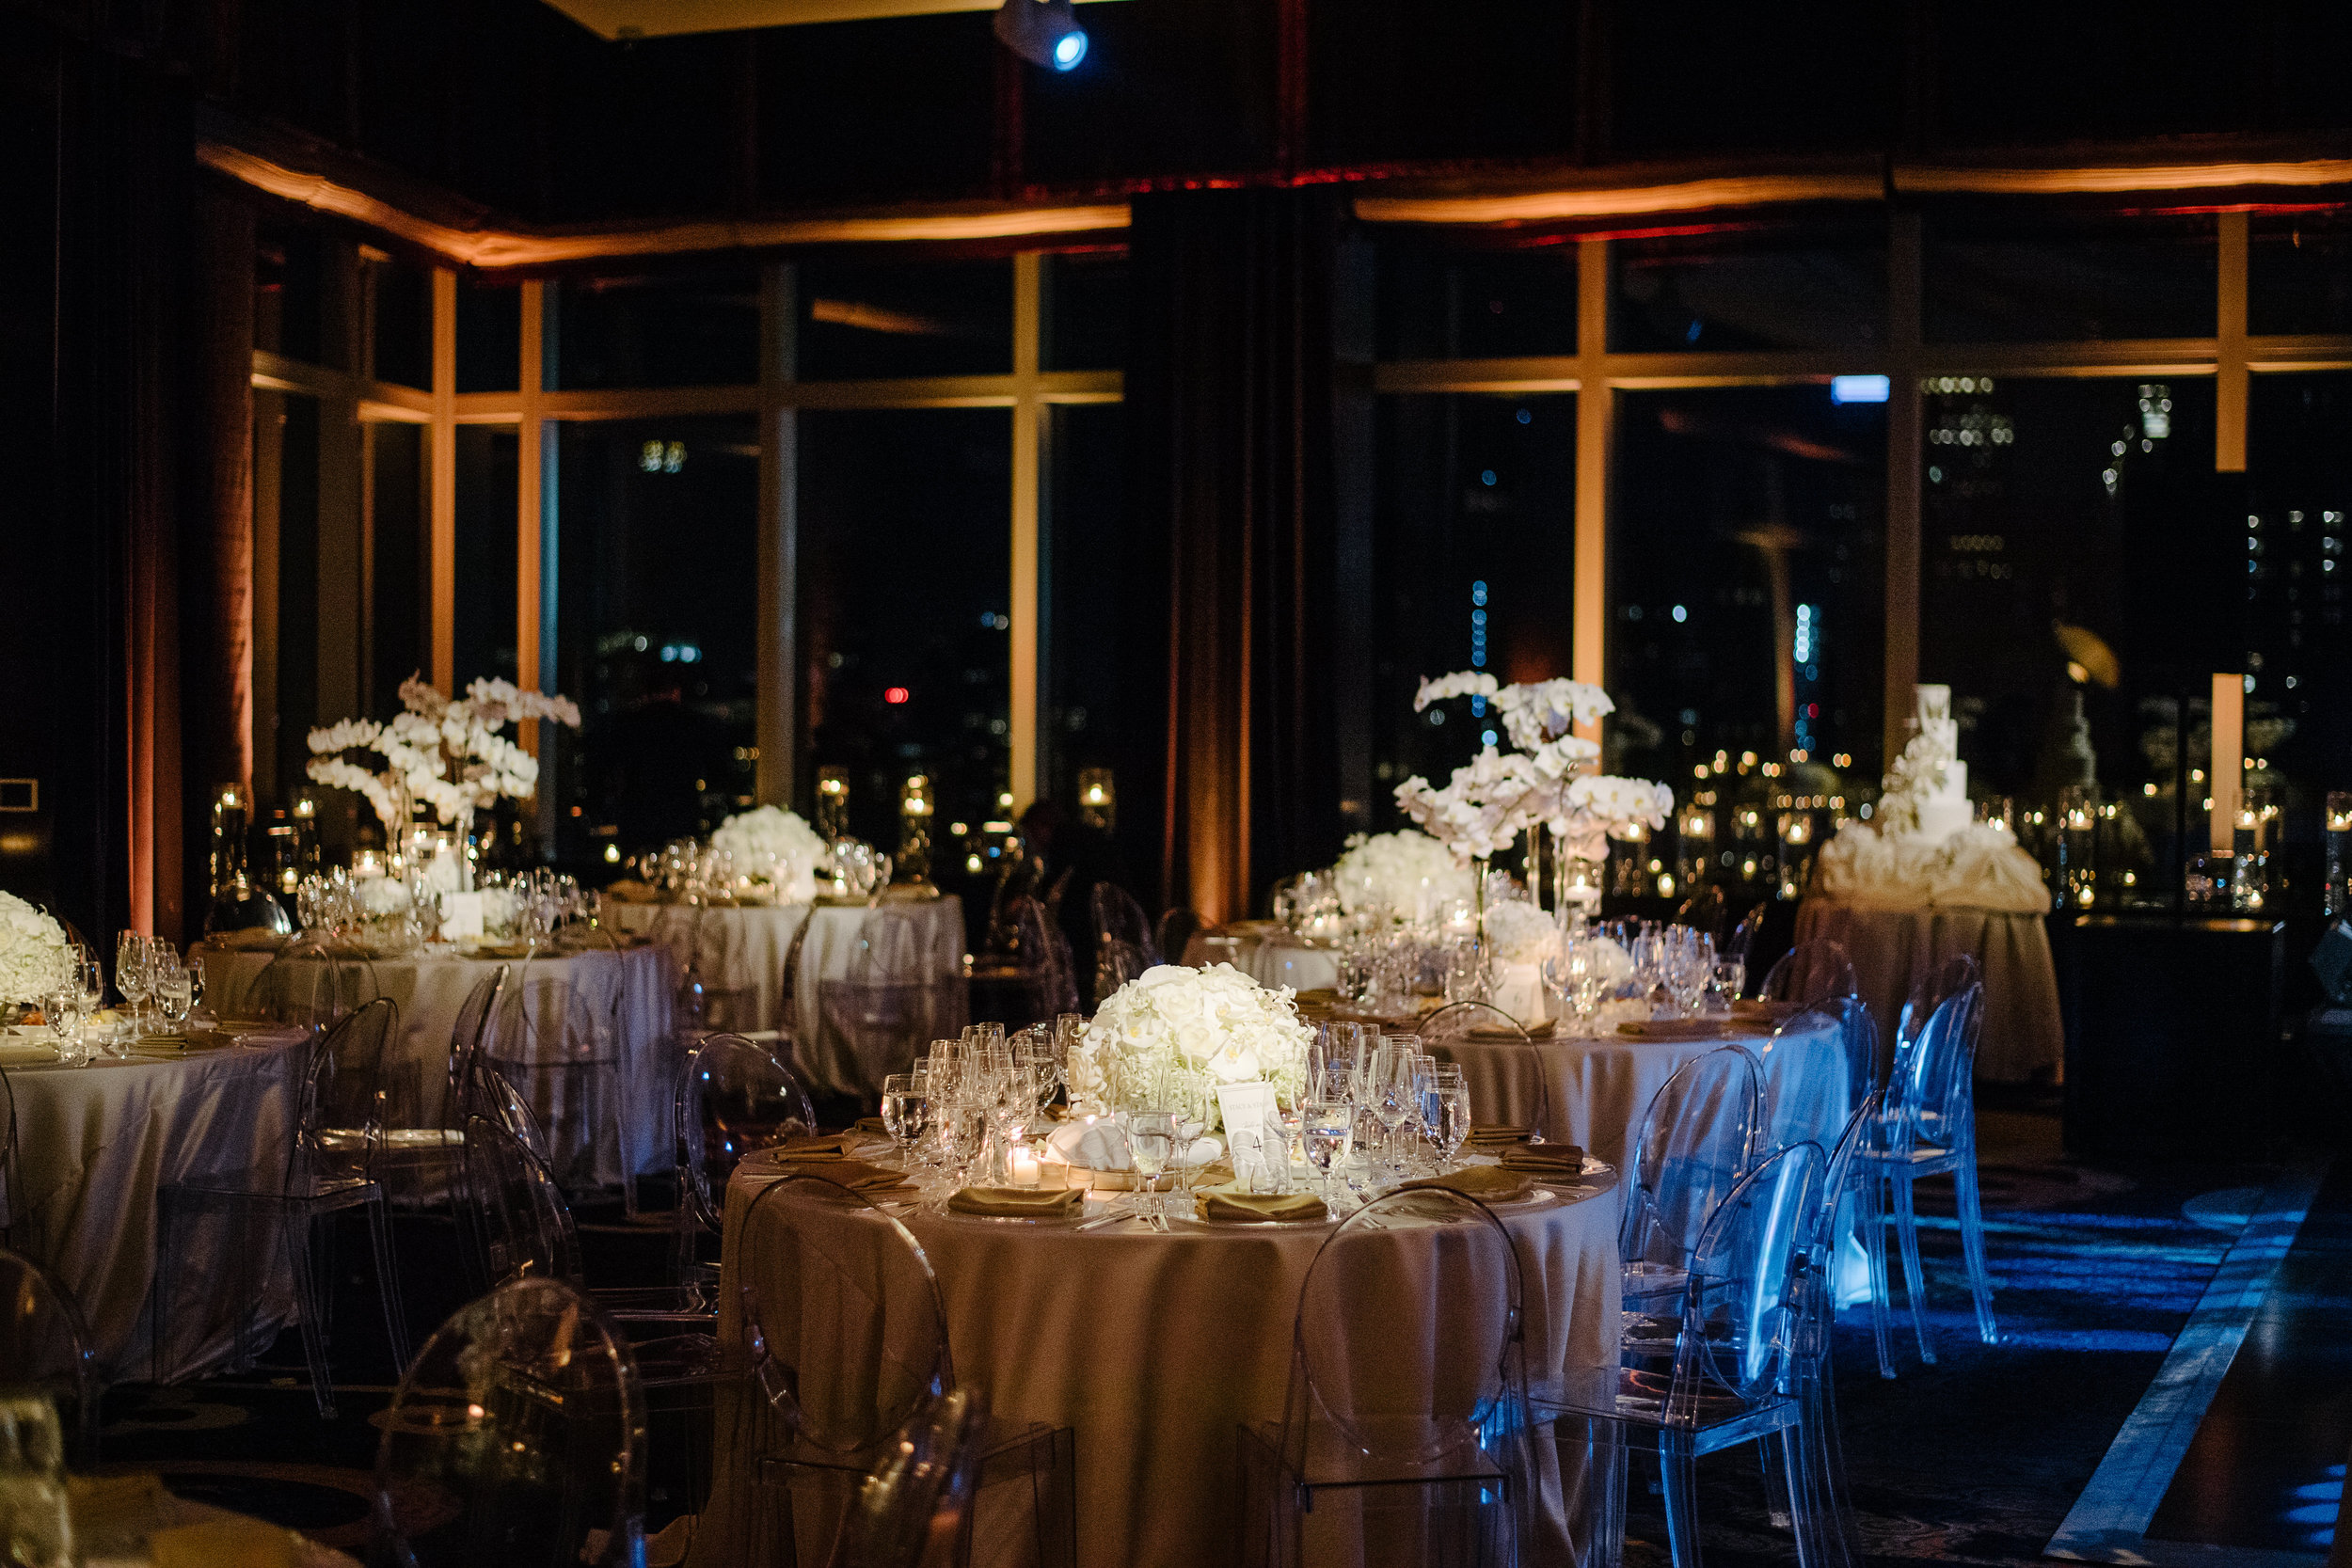 New-York-Wedding-Mandarin-Oriental-Andrea-Freeman-Events-18.jpg